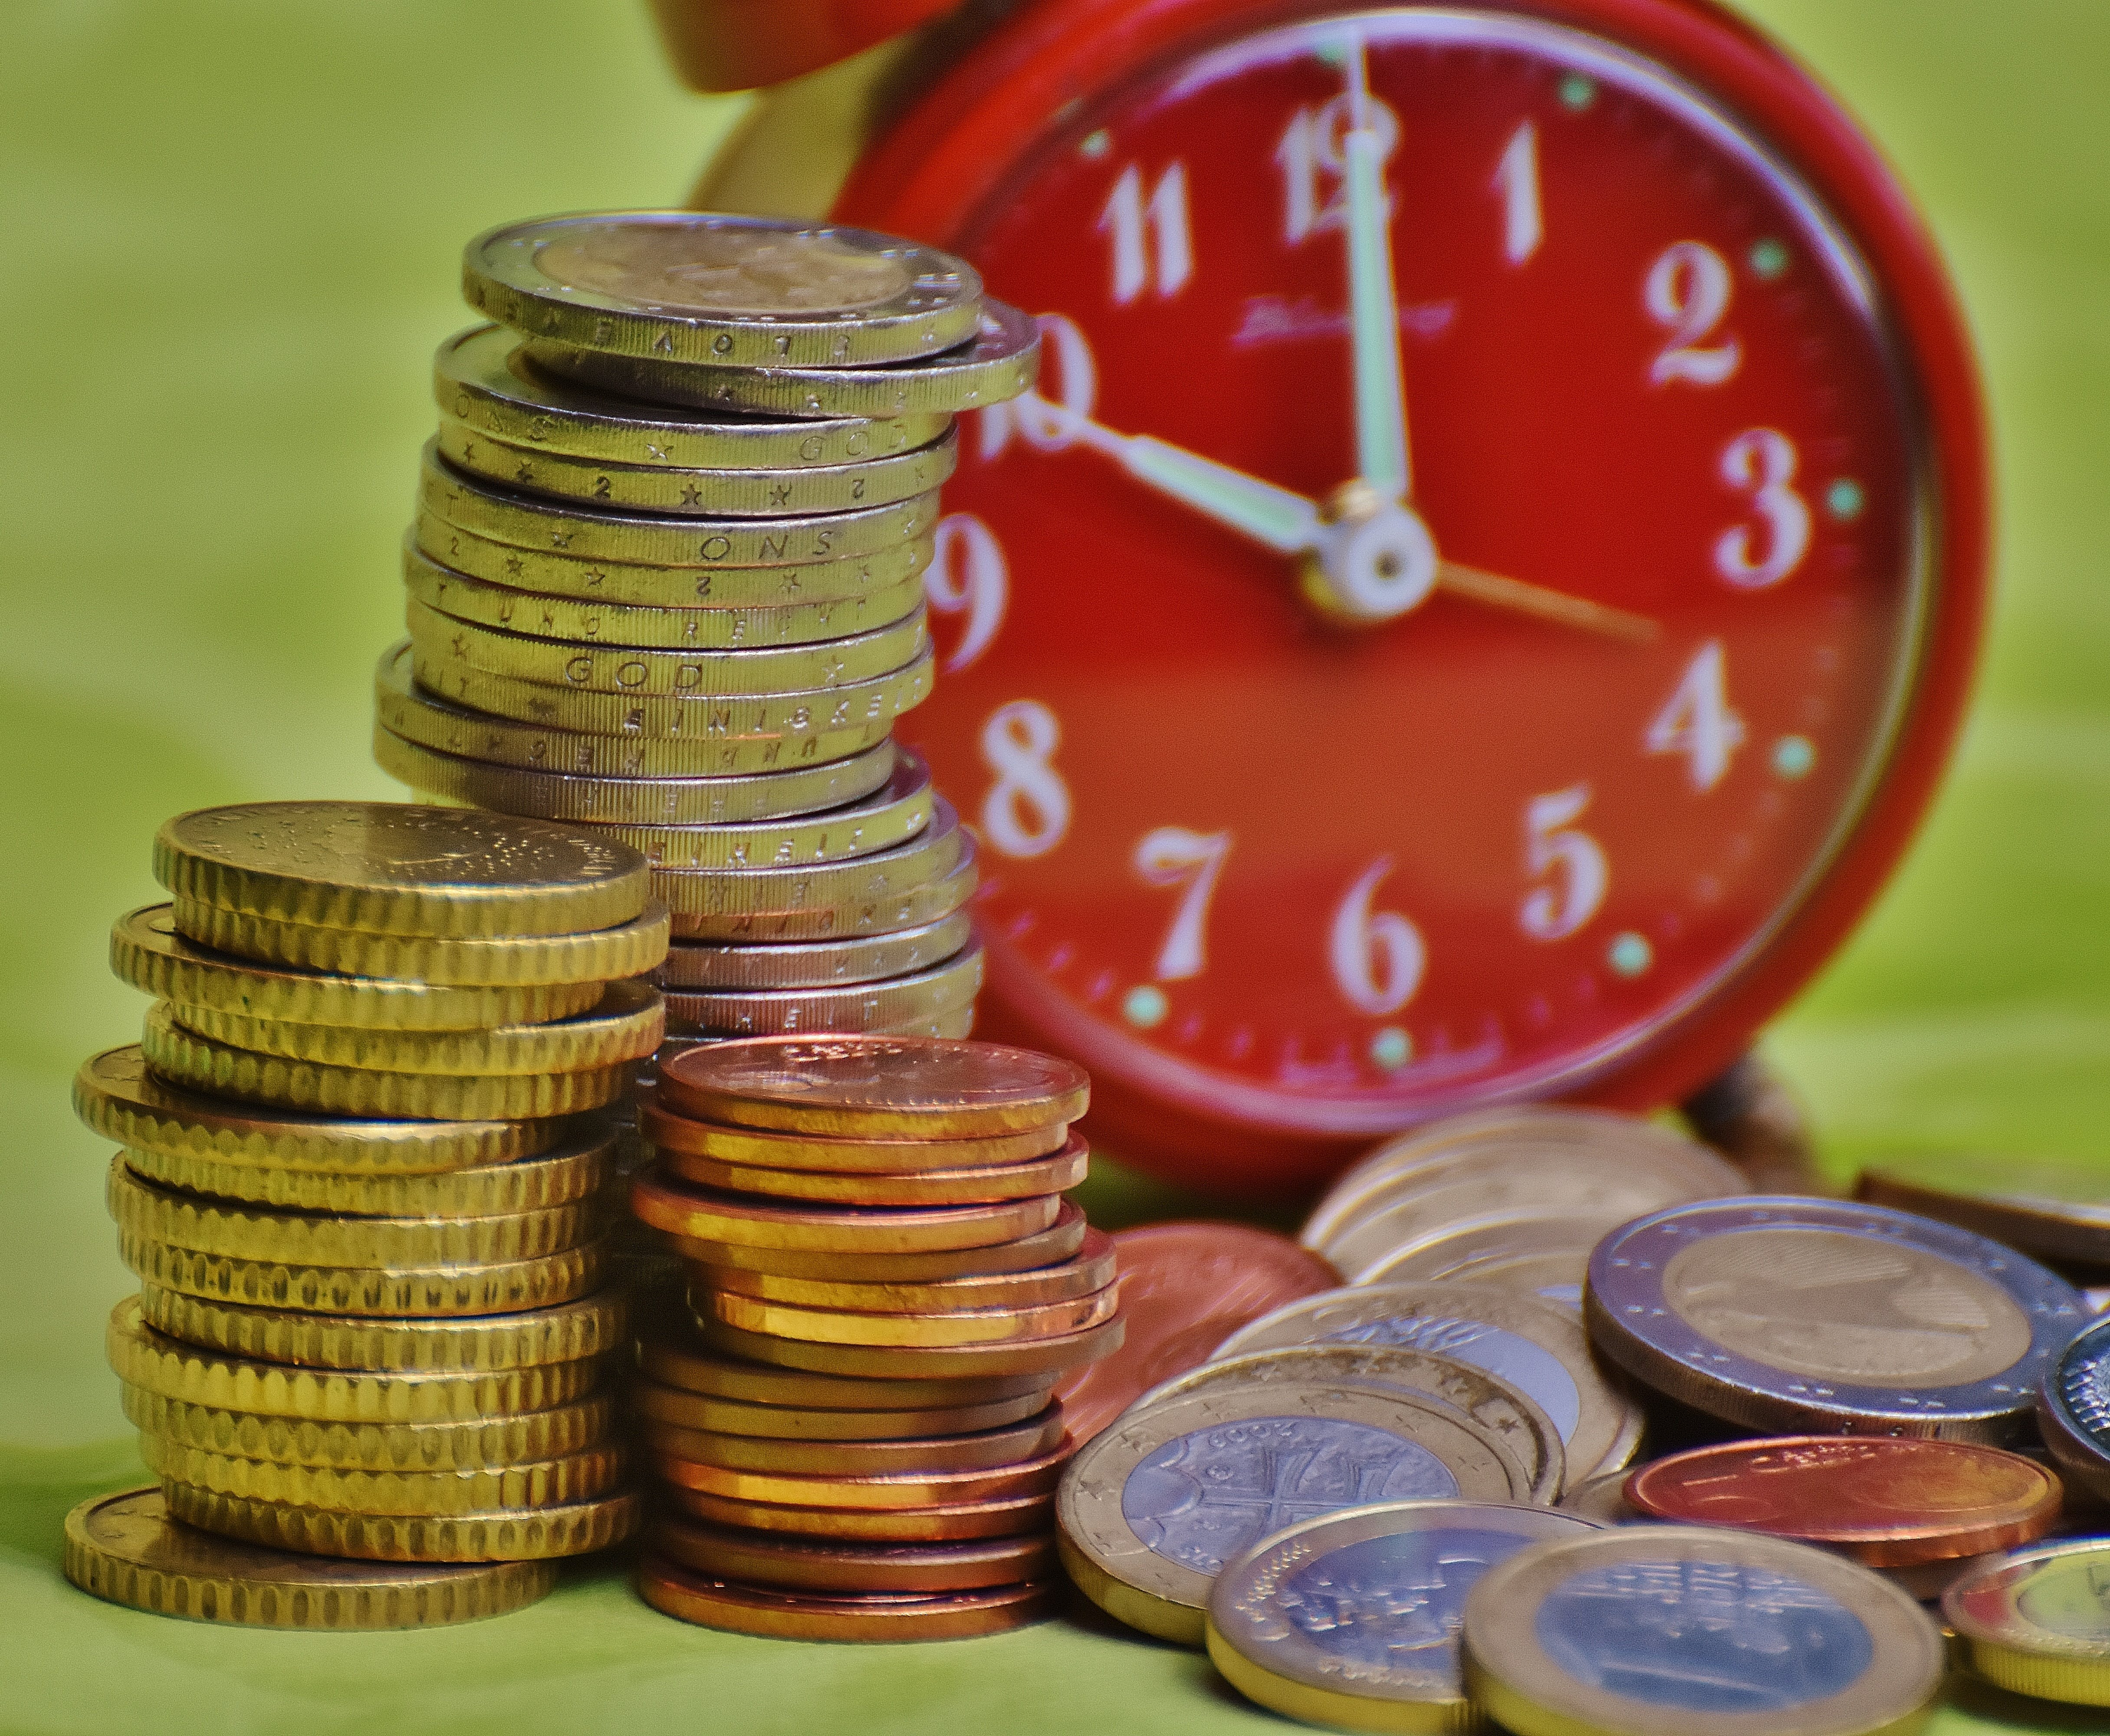 Free stock photo of money, coins, finance, currency